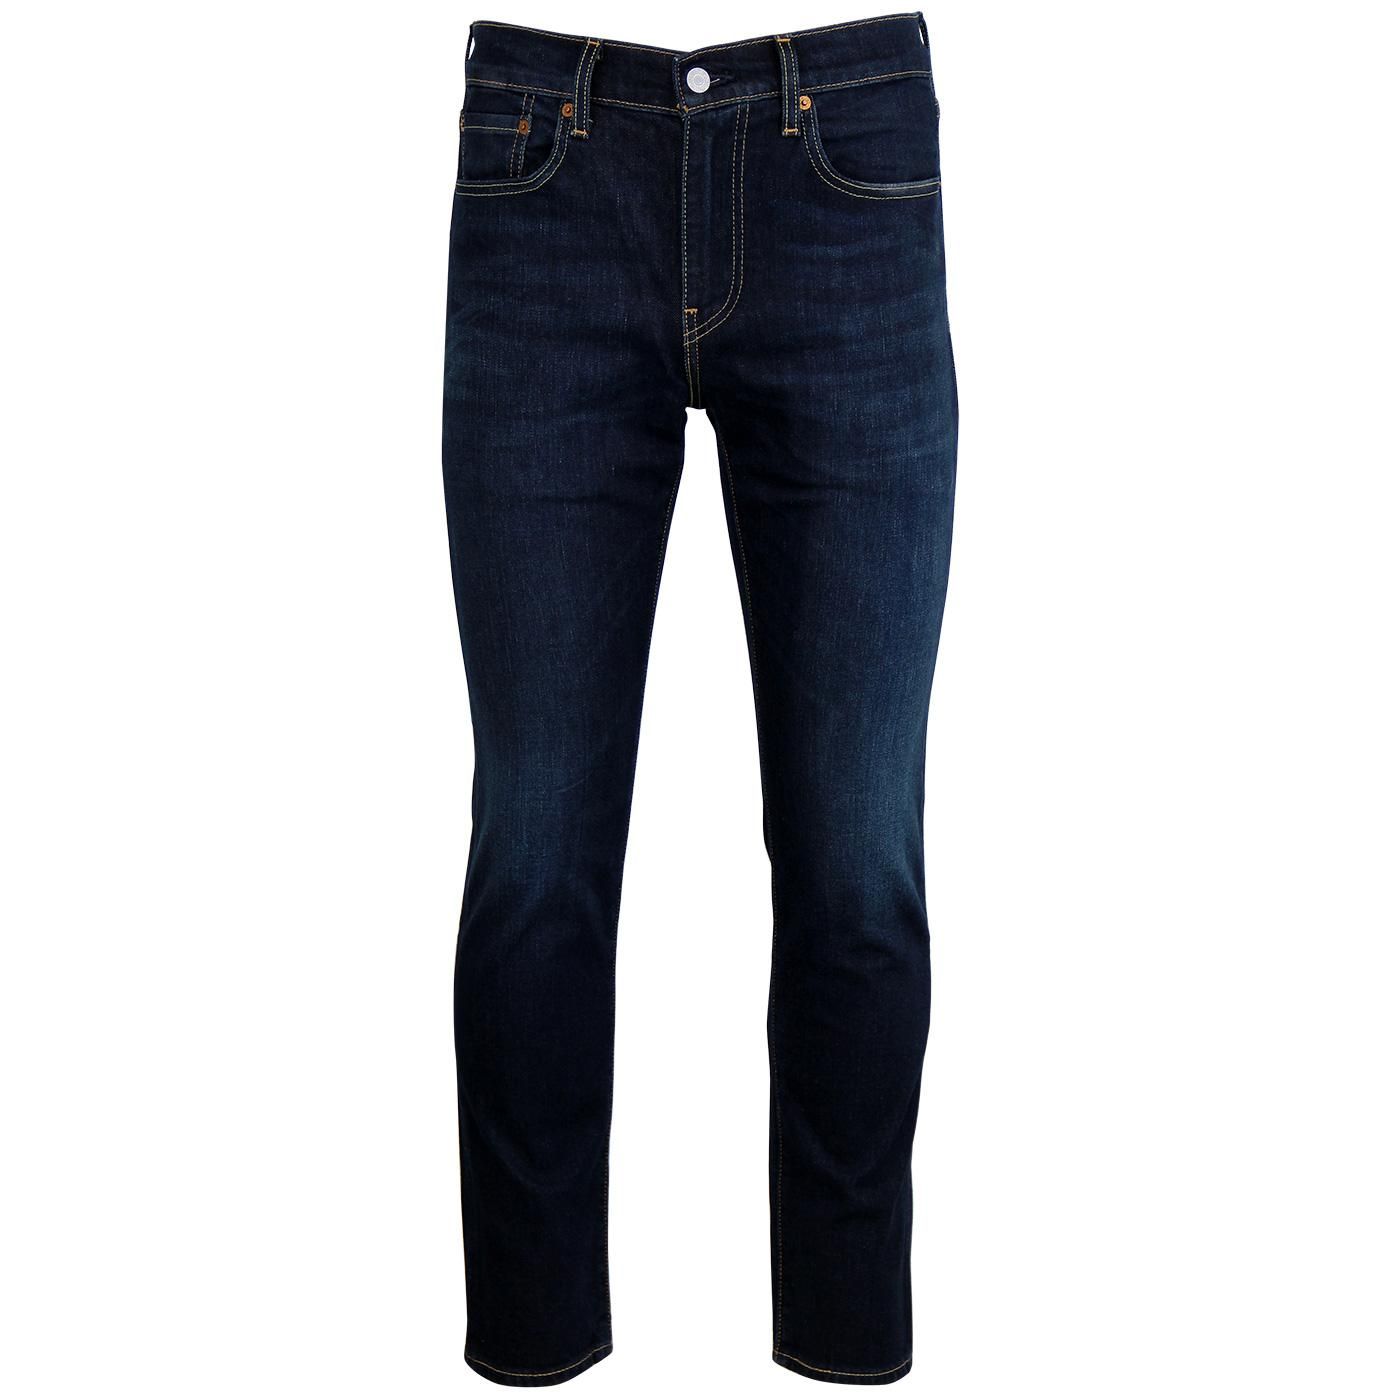 bf3d4a35 LEVI'S 502 Regular Tapered Mod Denim Jeans in Biology